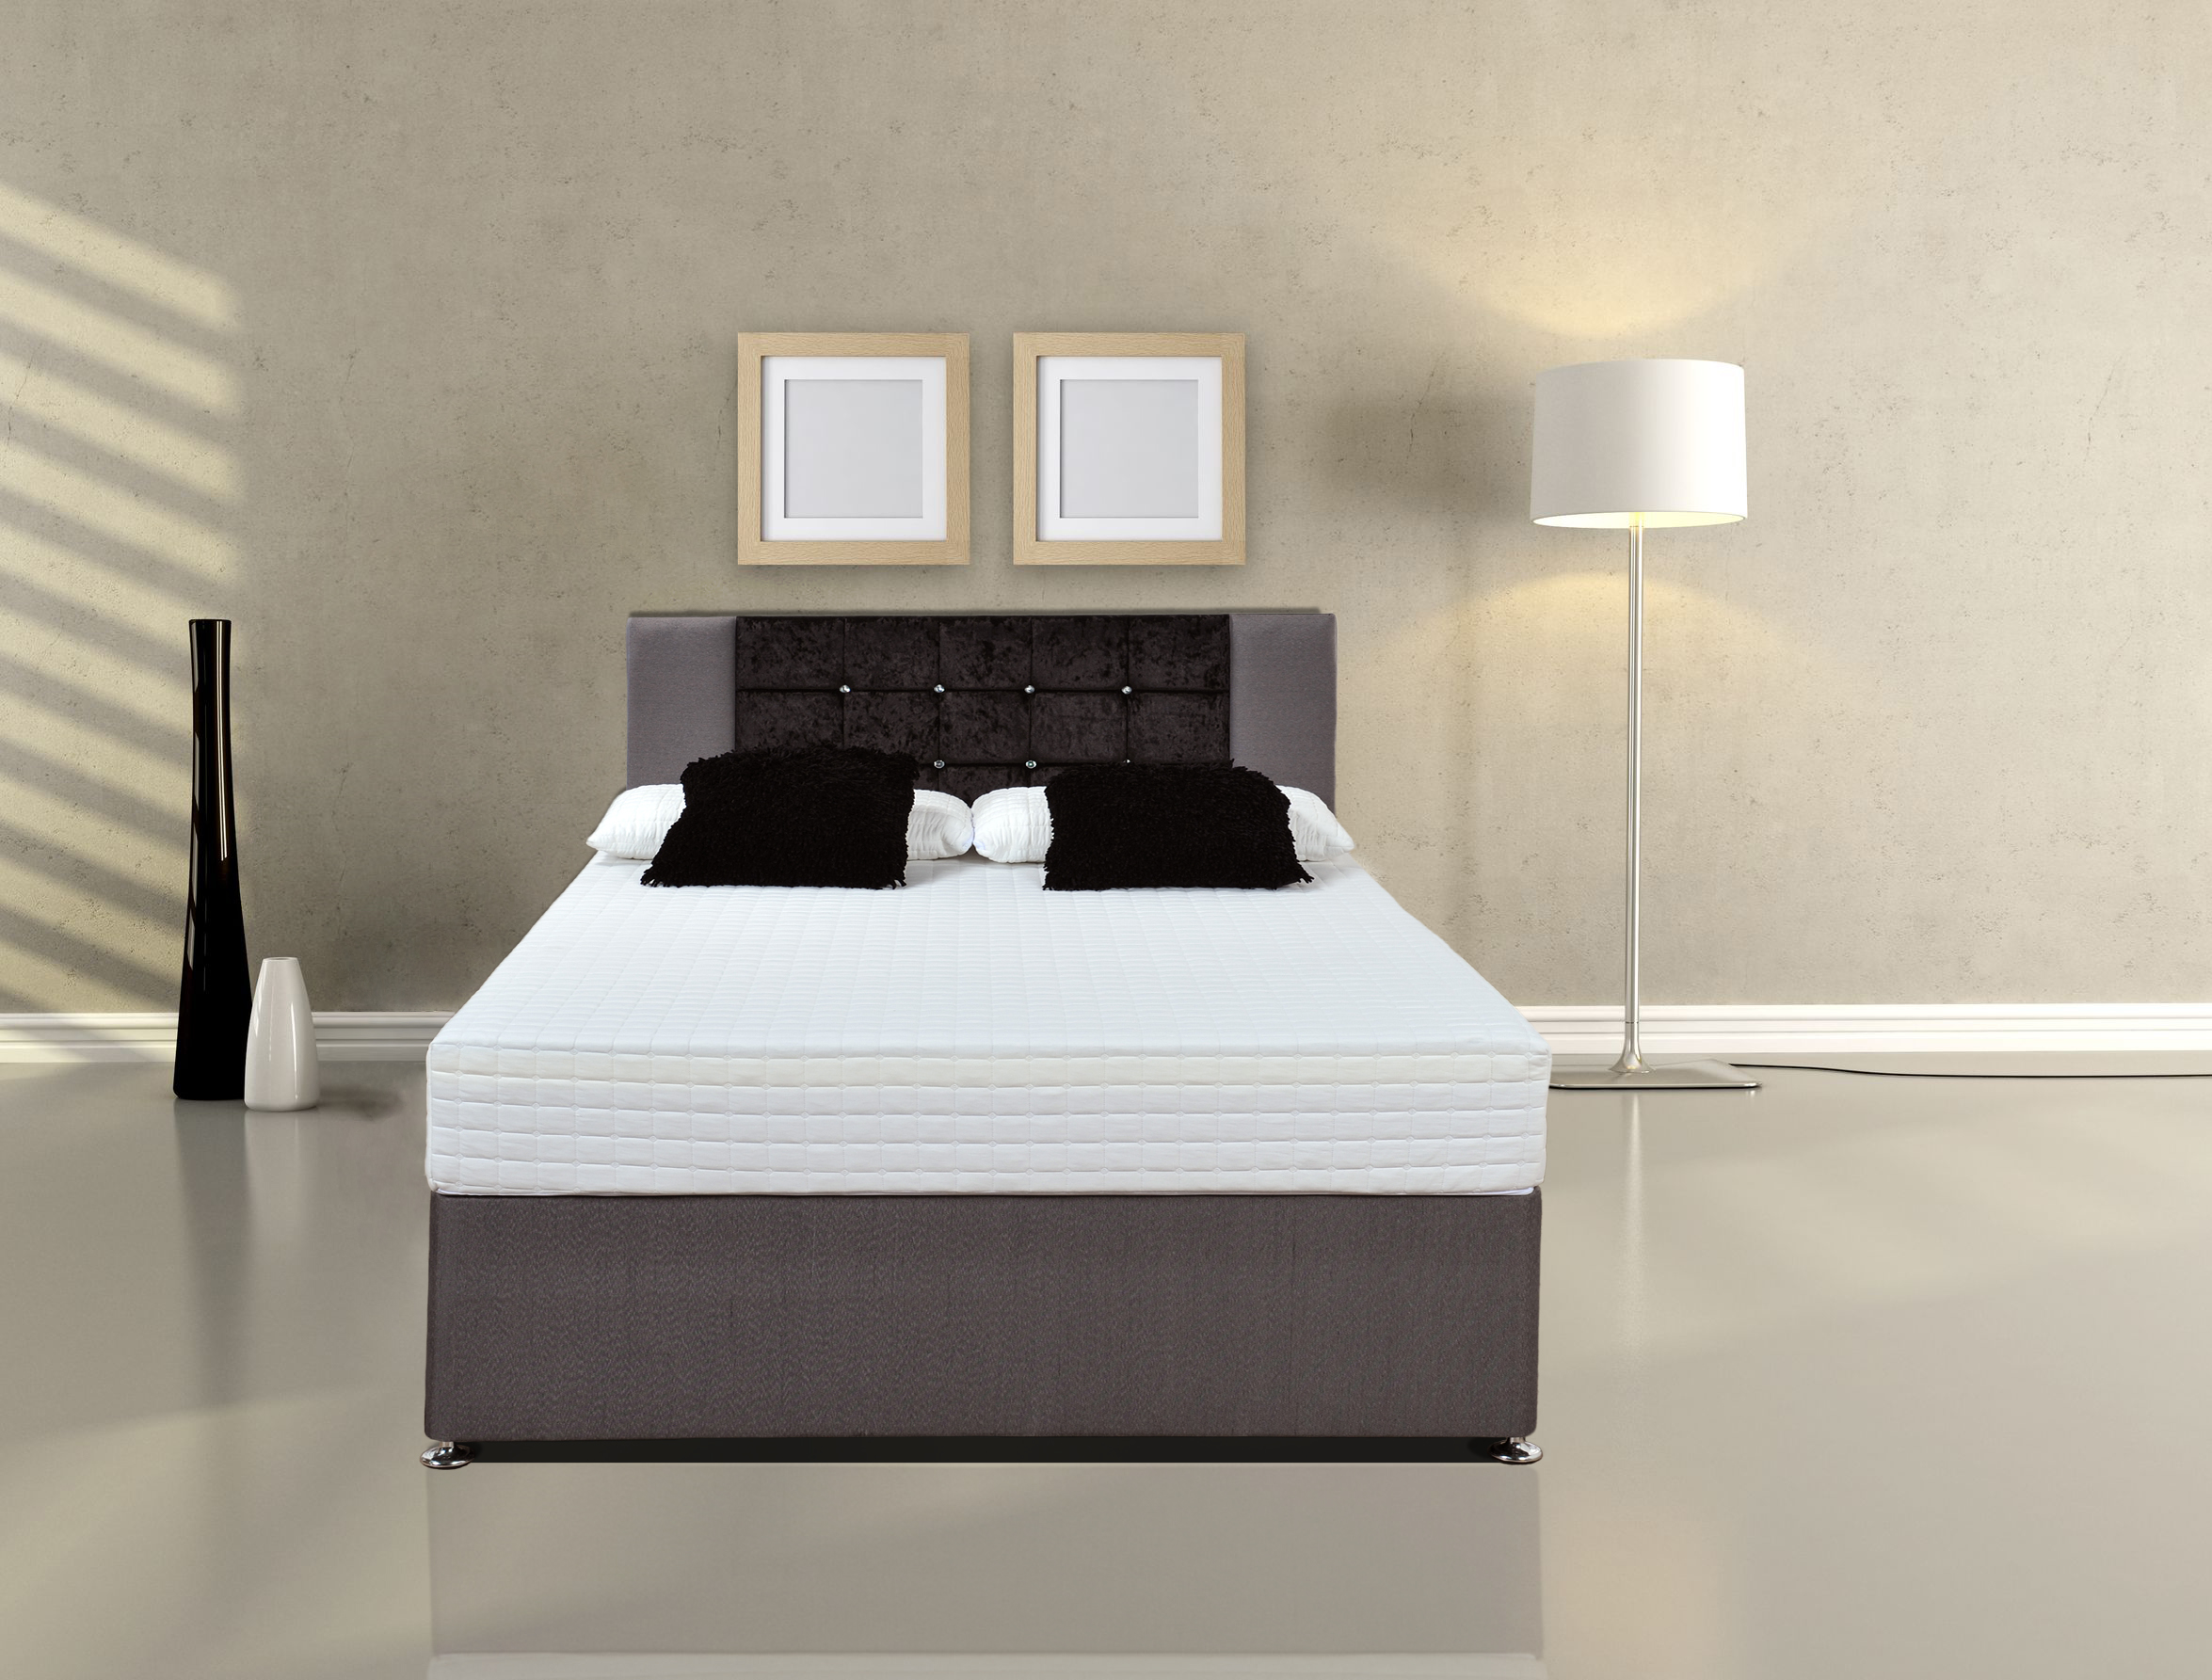 Single Pocket Sprung Memory Foam Mattress Memory Pocket